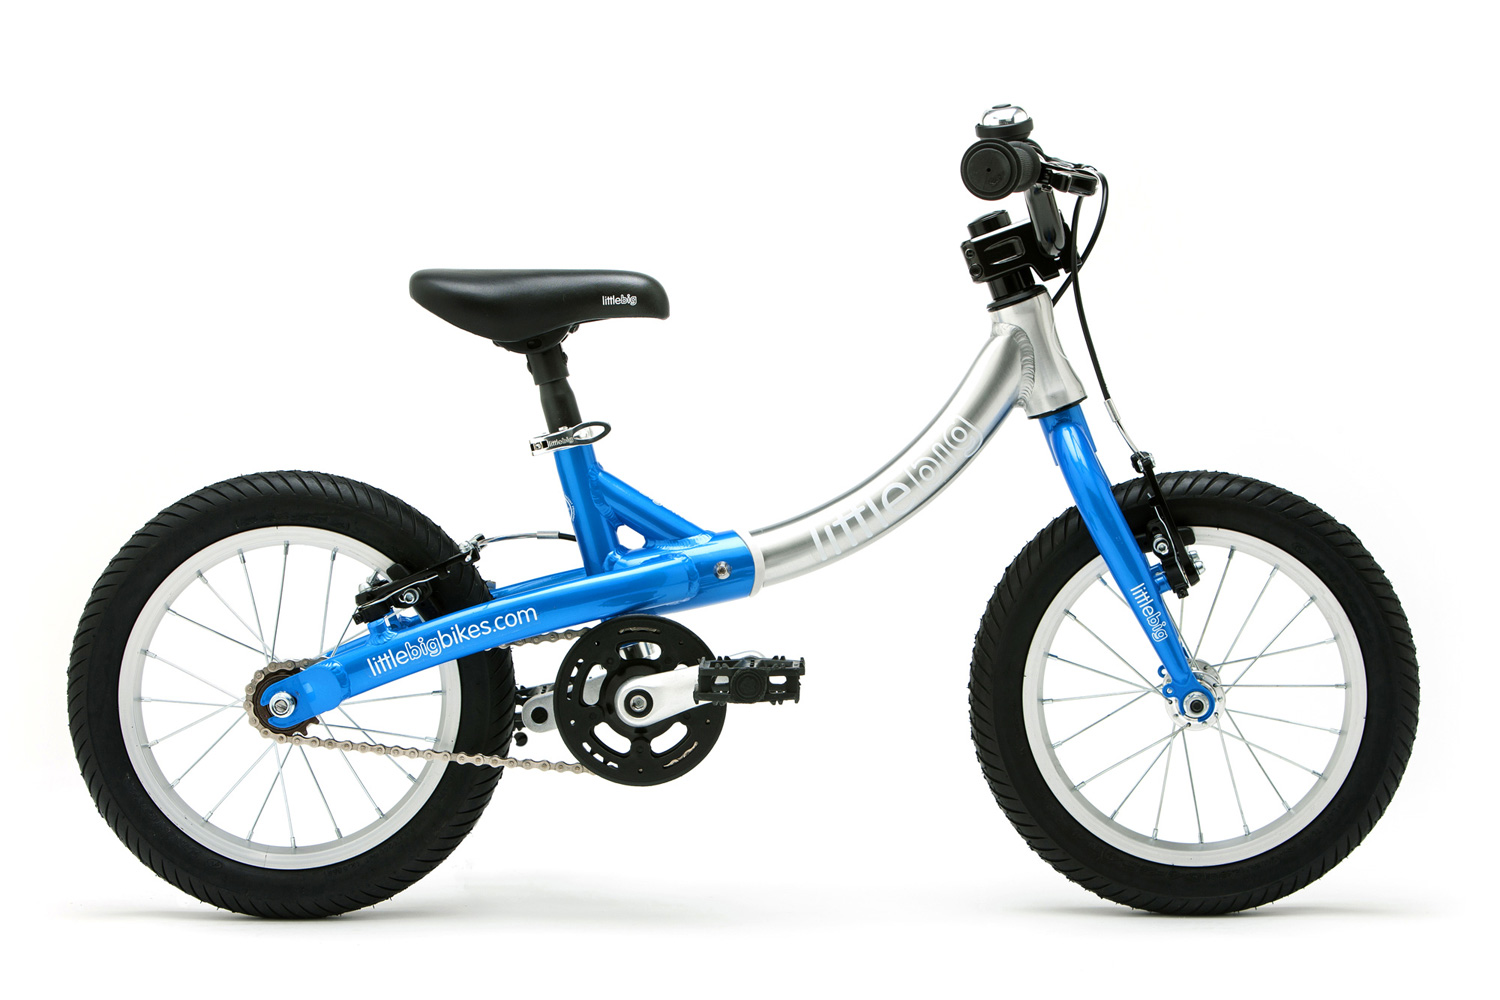 littlebig-big-pedal-bike-electric-blue-side-view